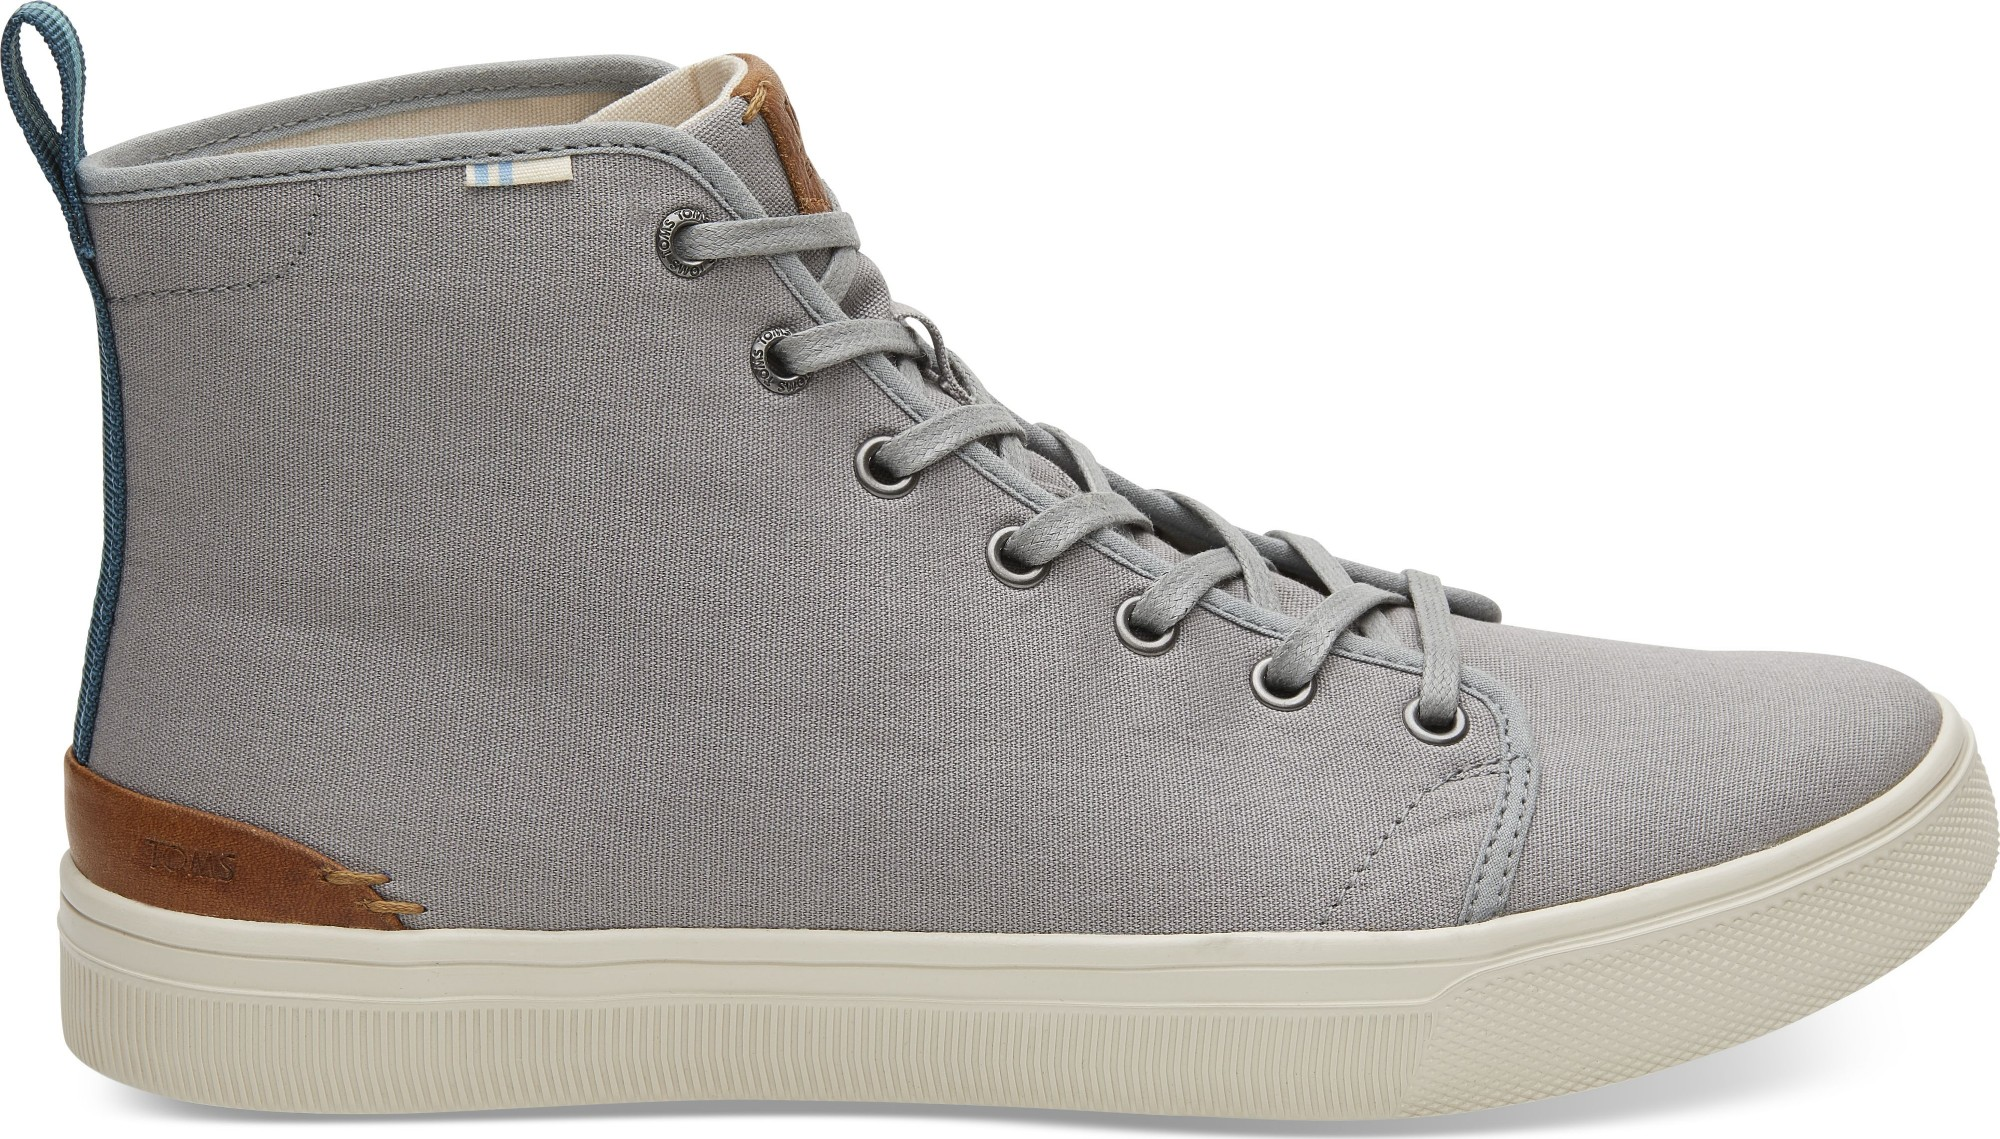 TOMS Canvas Men's Trvl Lite High Sneaker Neutral Gray 42